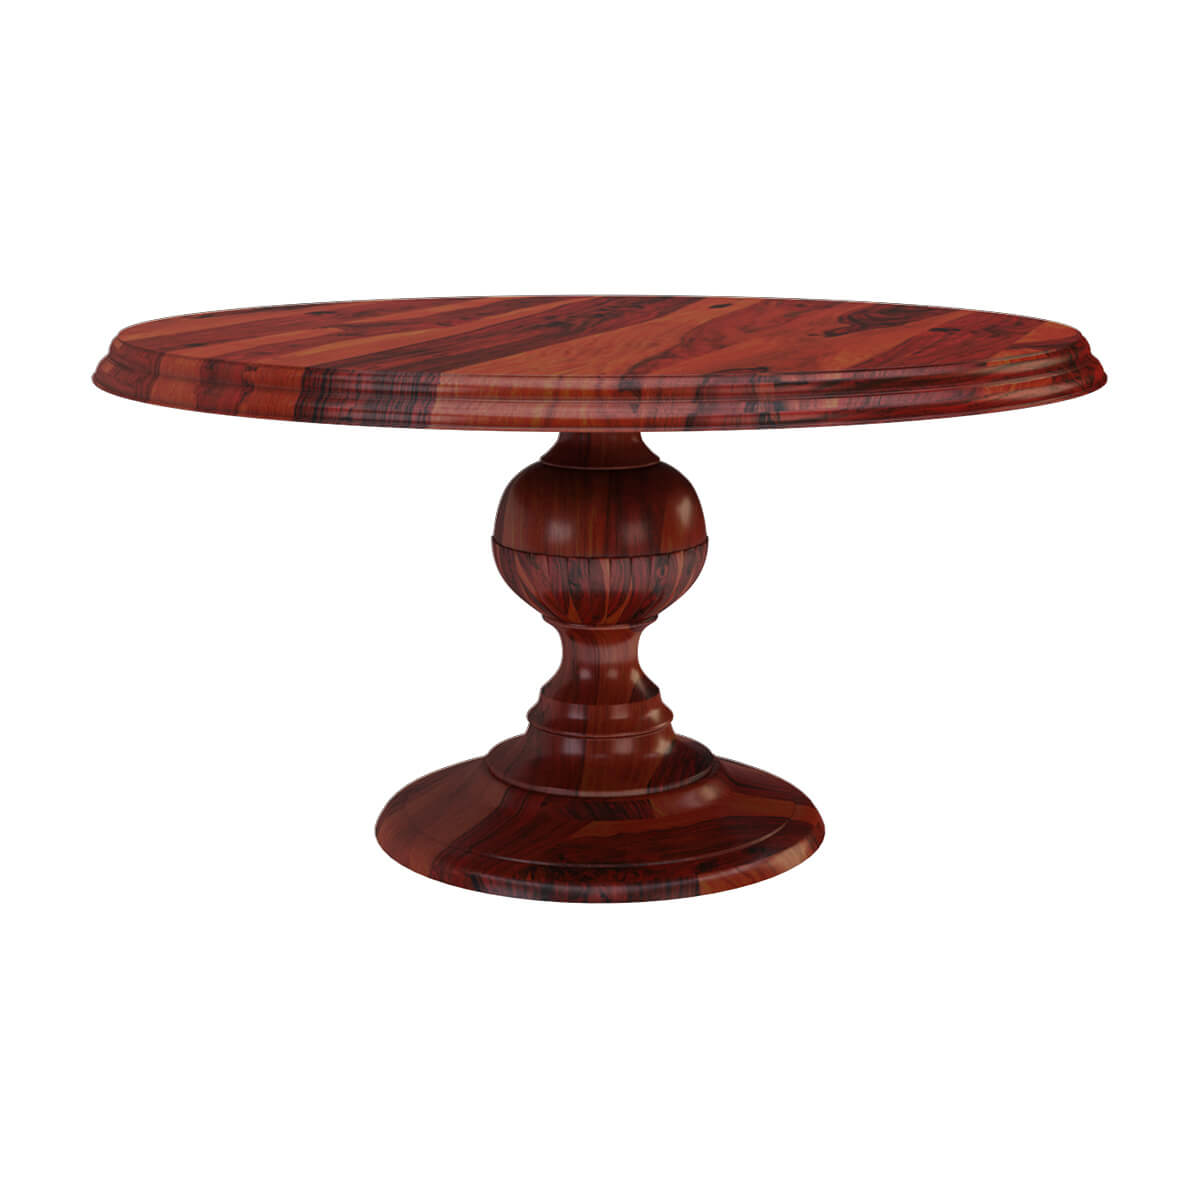 Sierra concepts 60 solid wood rustic pedestal round Rustic wood dining table